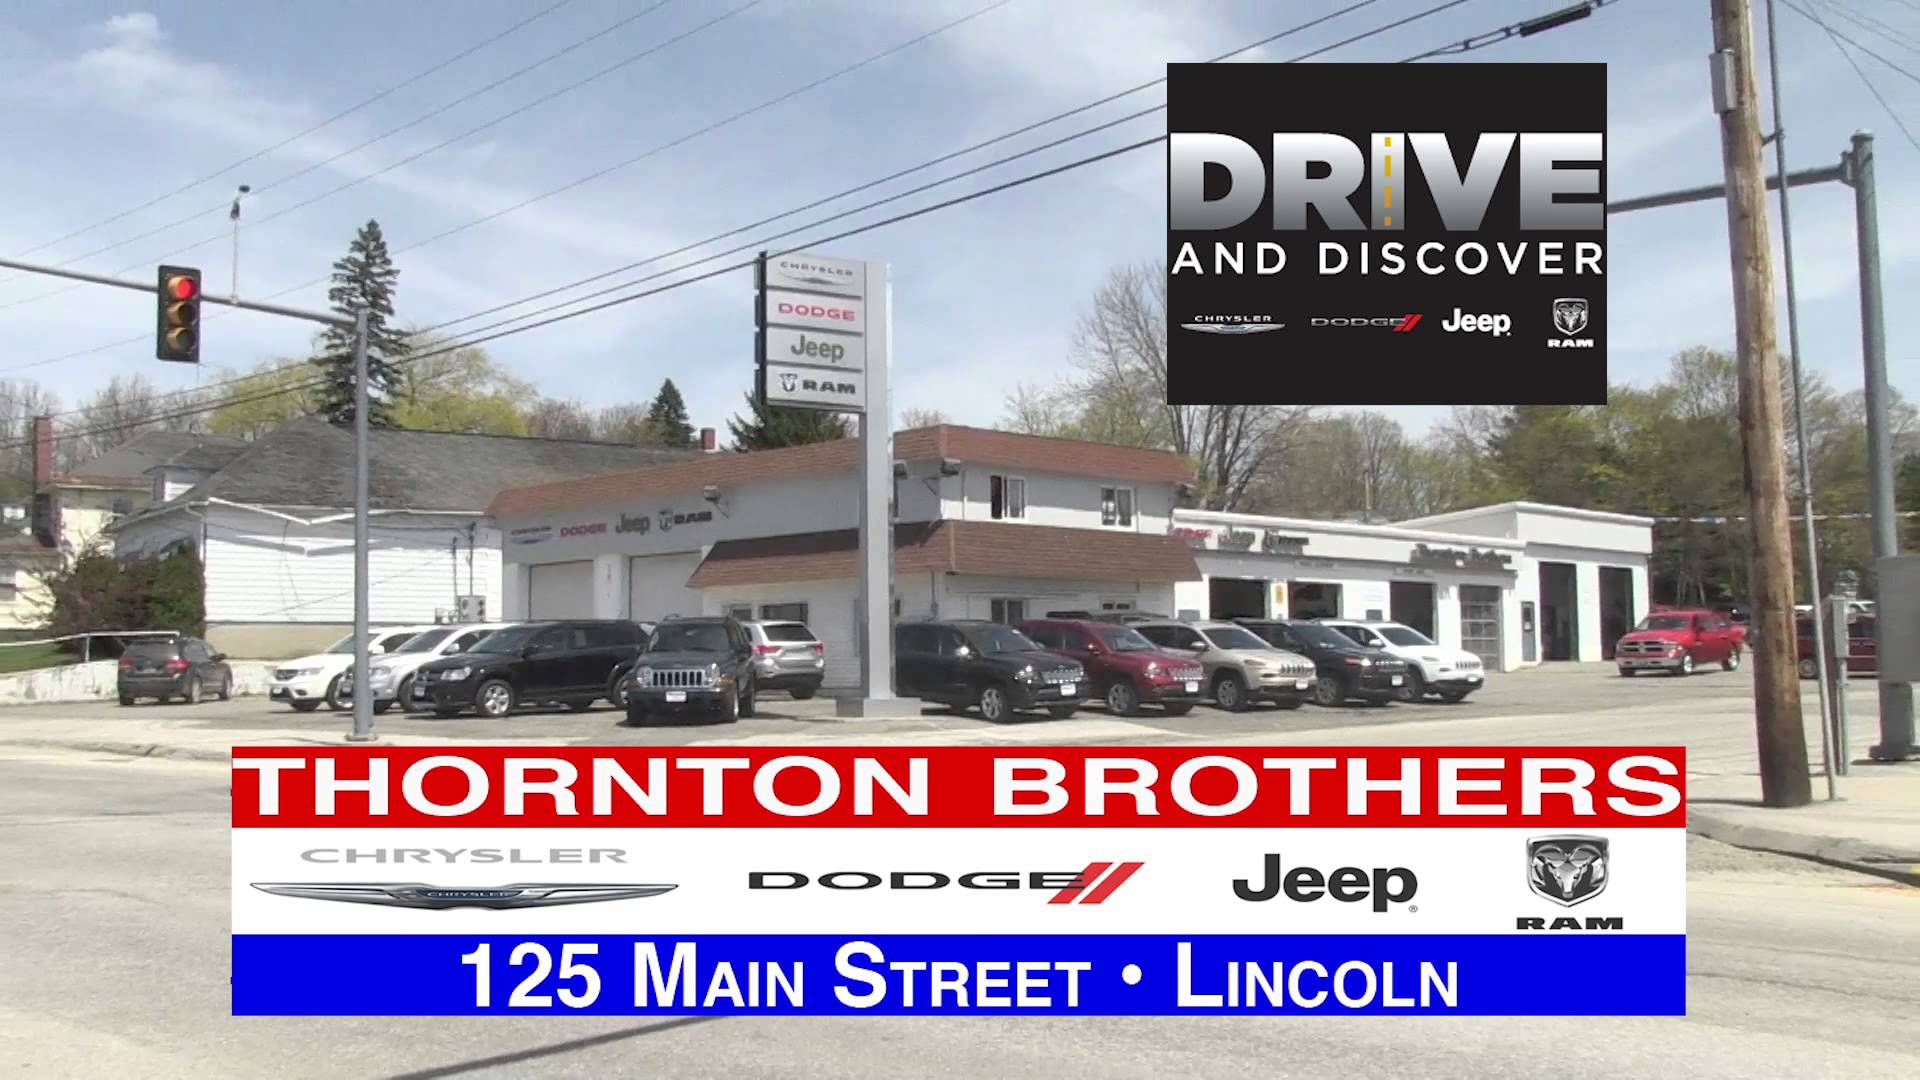 THORNTON BROTHERS_DRIVE & DISCOVER 515_RMVP249_HD_credit